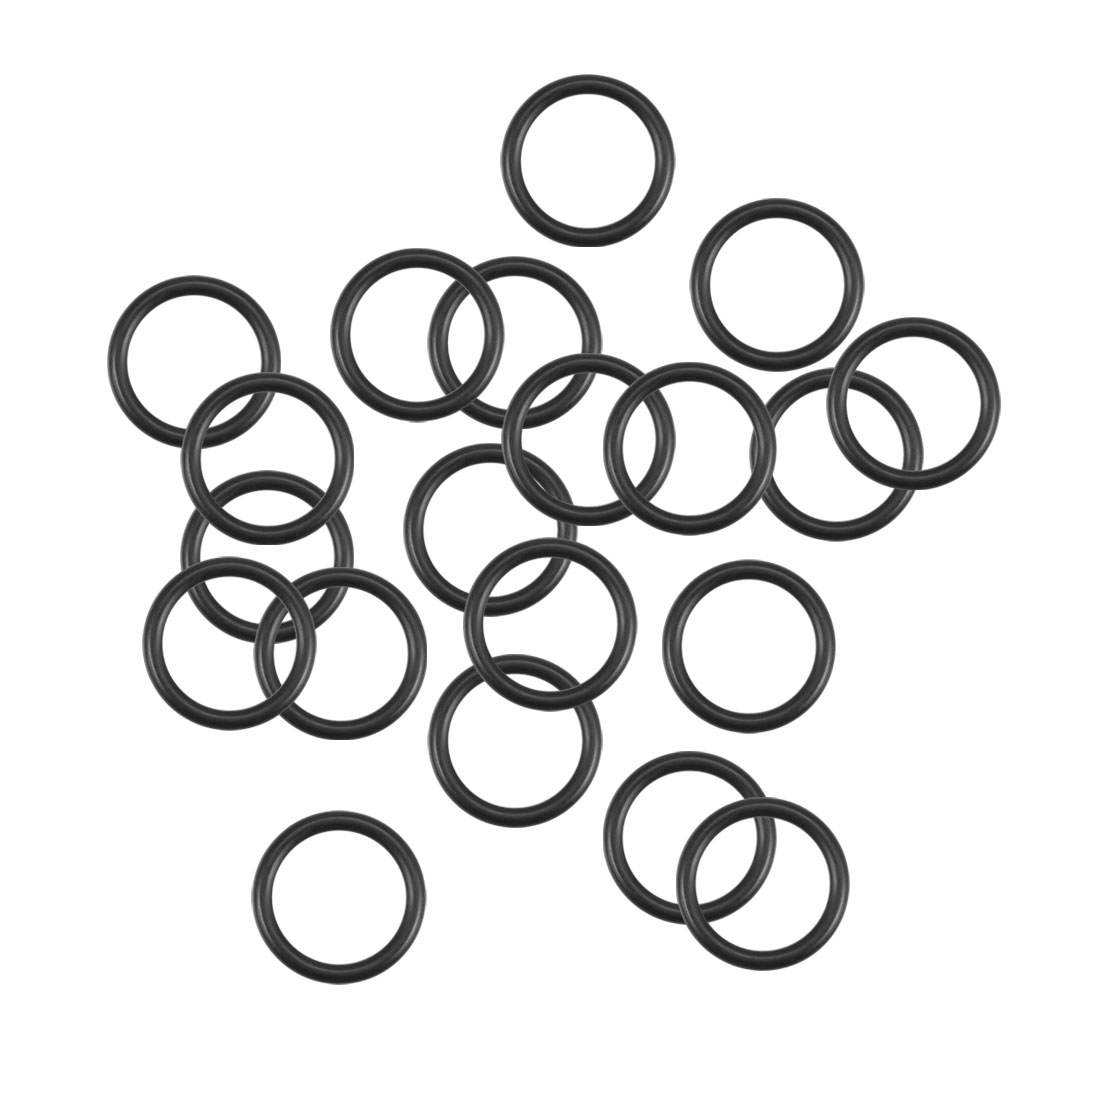 O-Rings Nitrile Rubber 11.5mm x 15.1mm x 1.8mm Round Seal Gasket 20Pcs